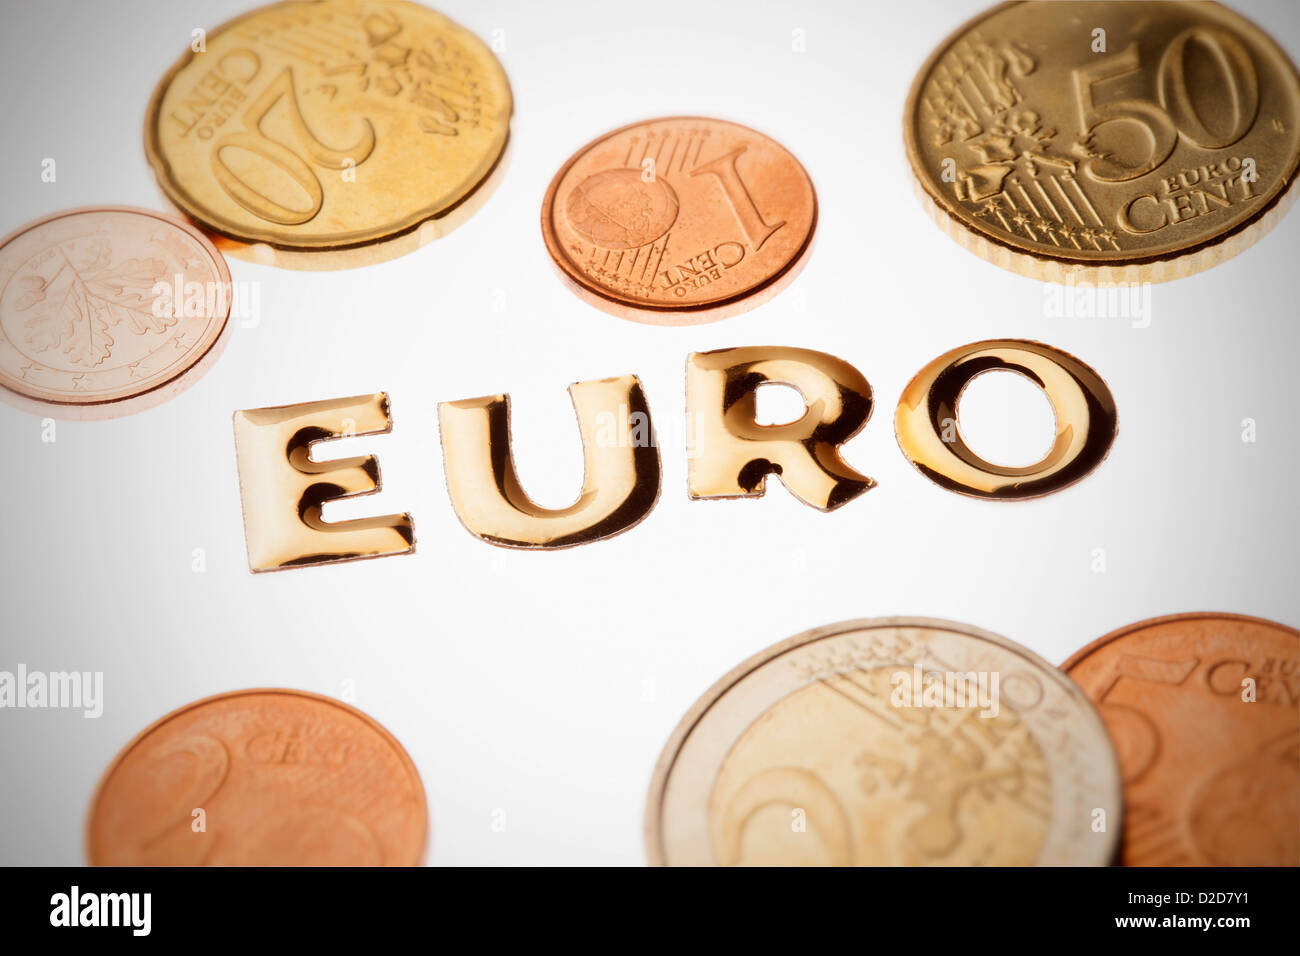 Single word 'money' in gold lettering surrounded by euro coins - Stock Image